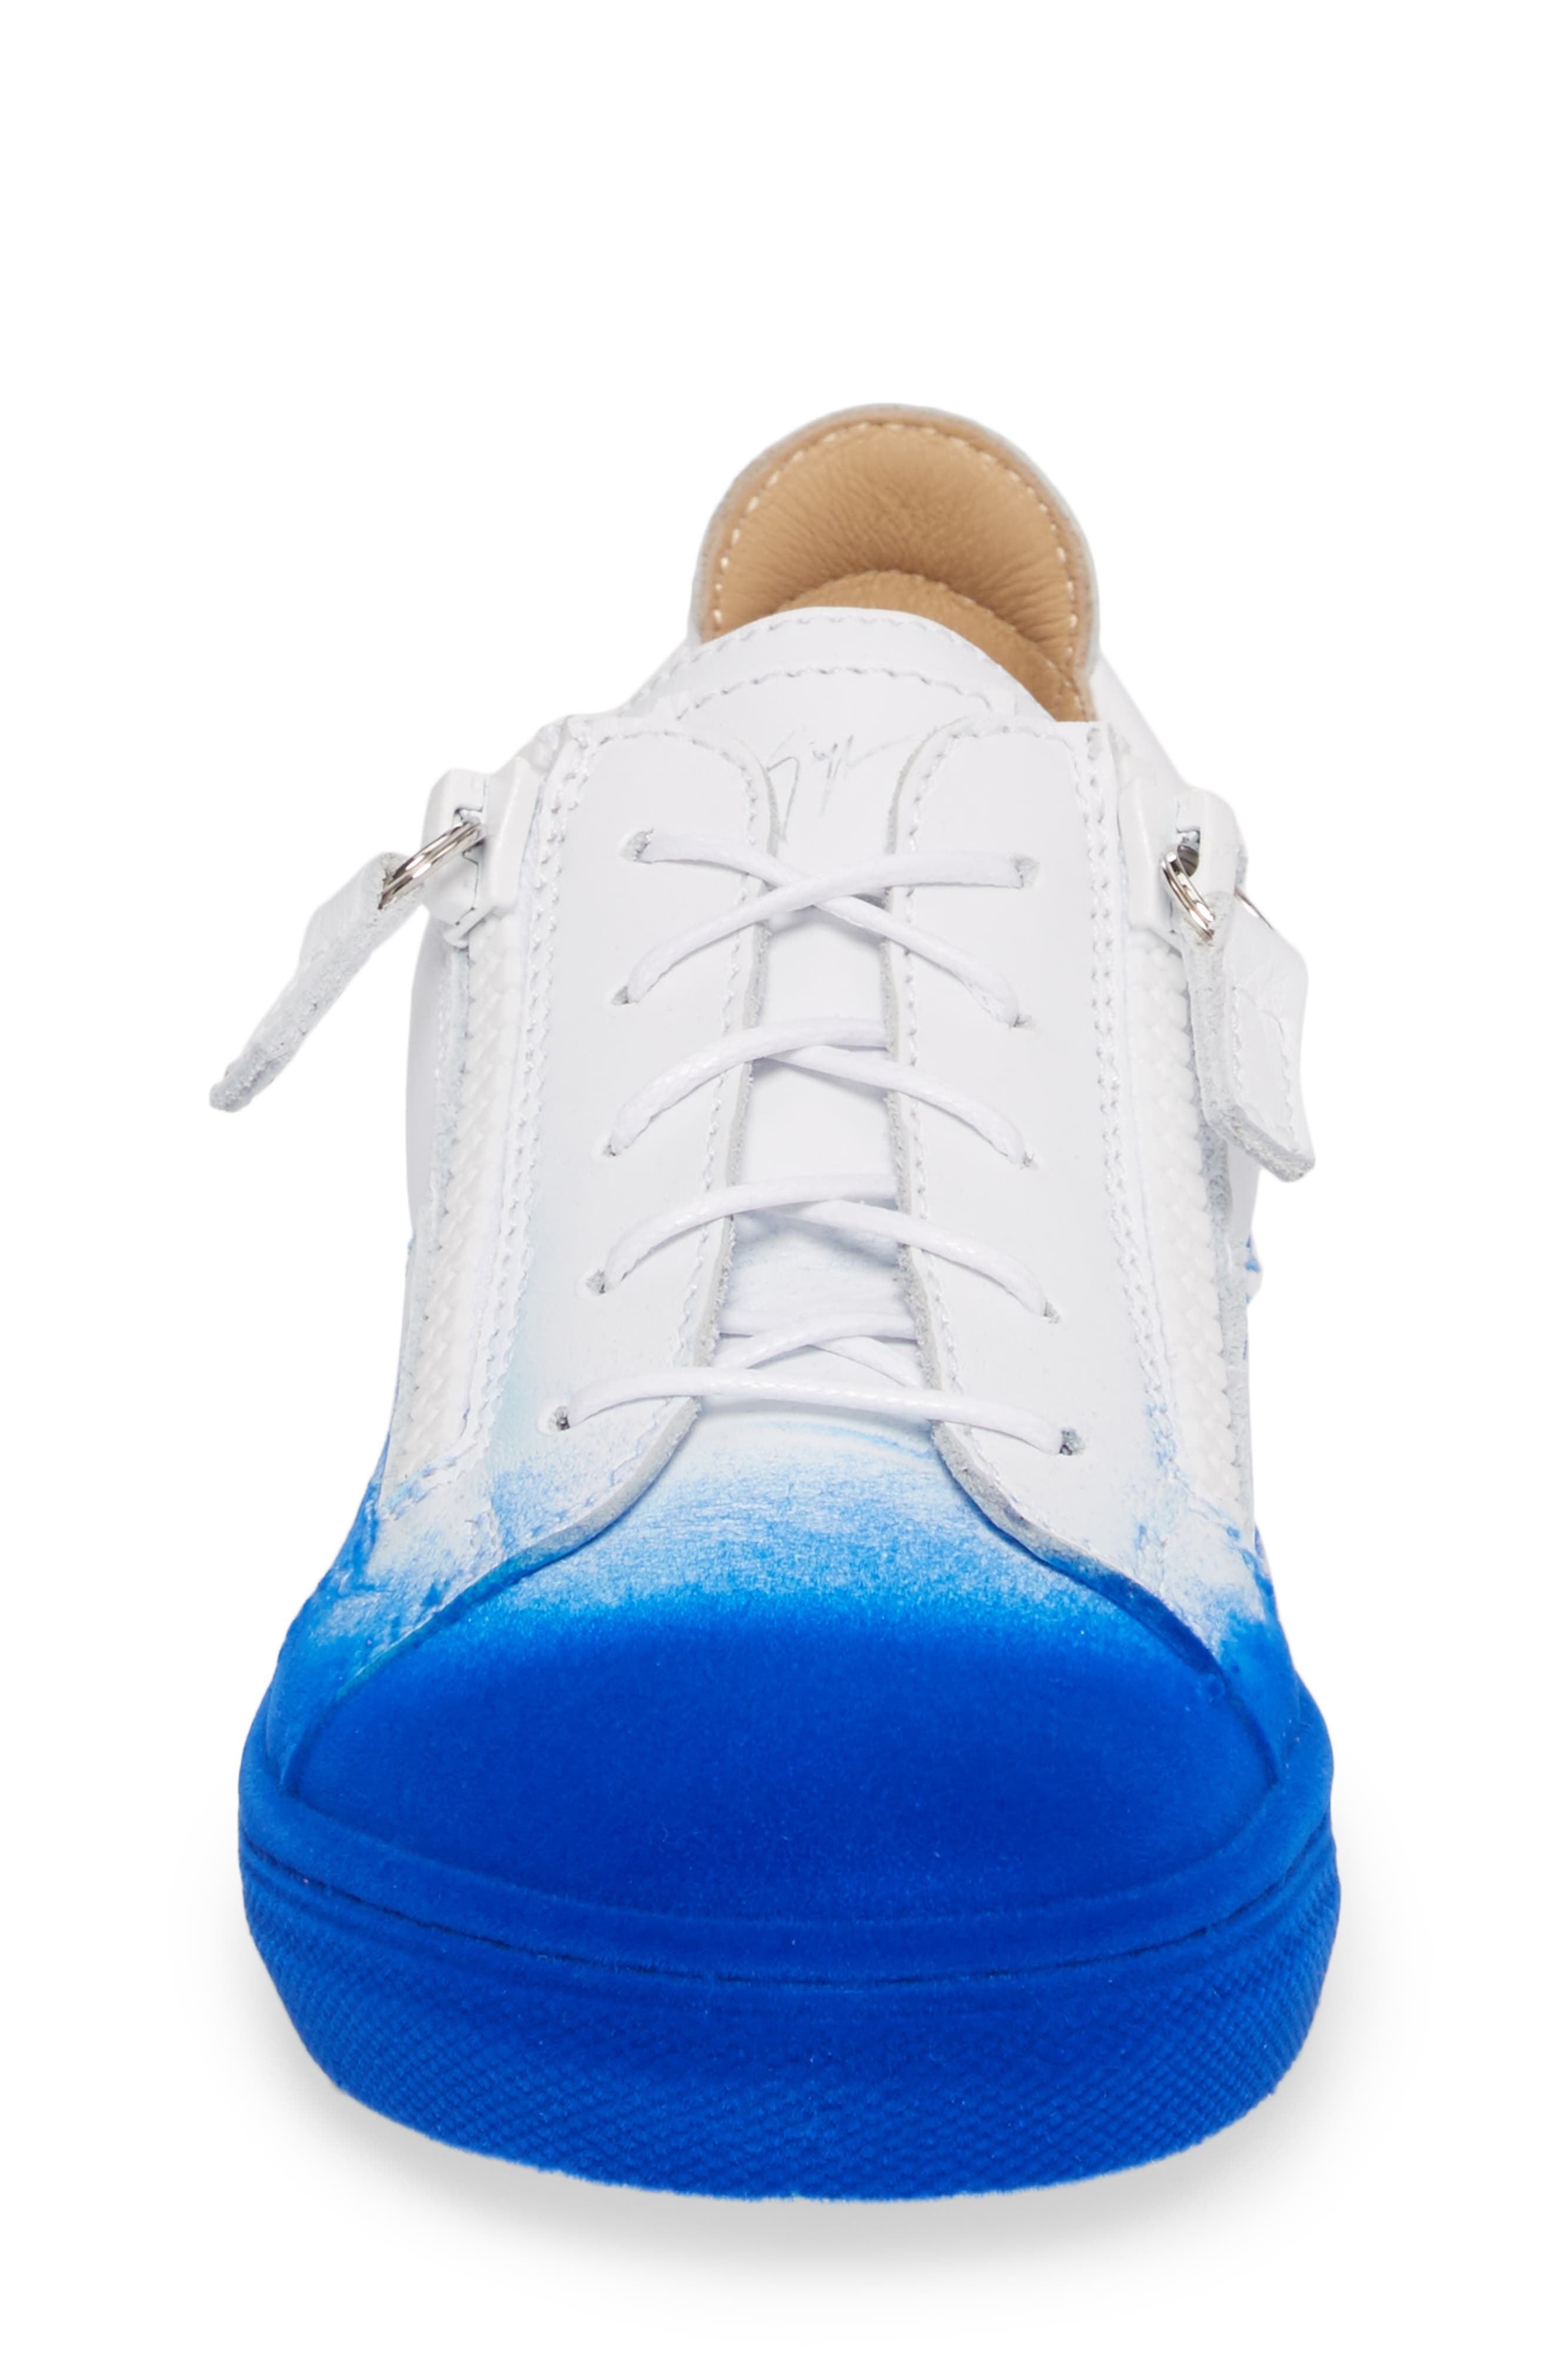 Smuggy Ombré Flocked Sneaker,                             Alternate thumbnail 4, color,                             400